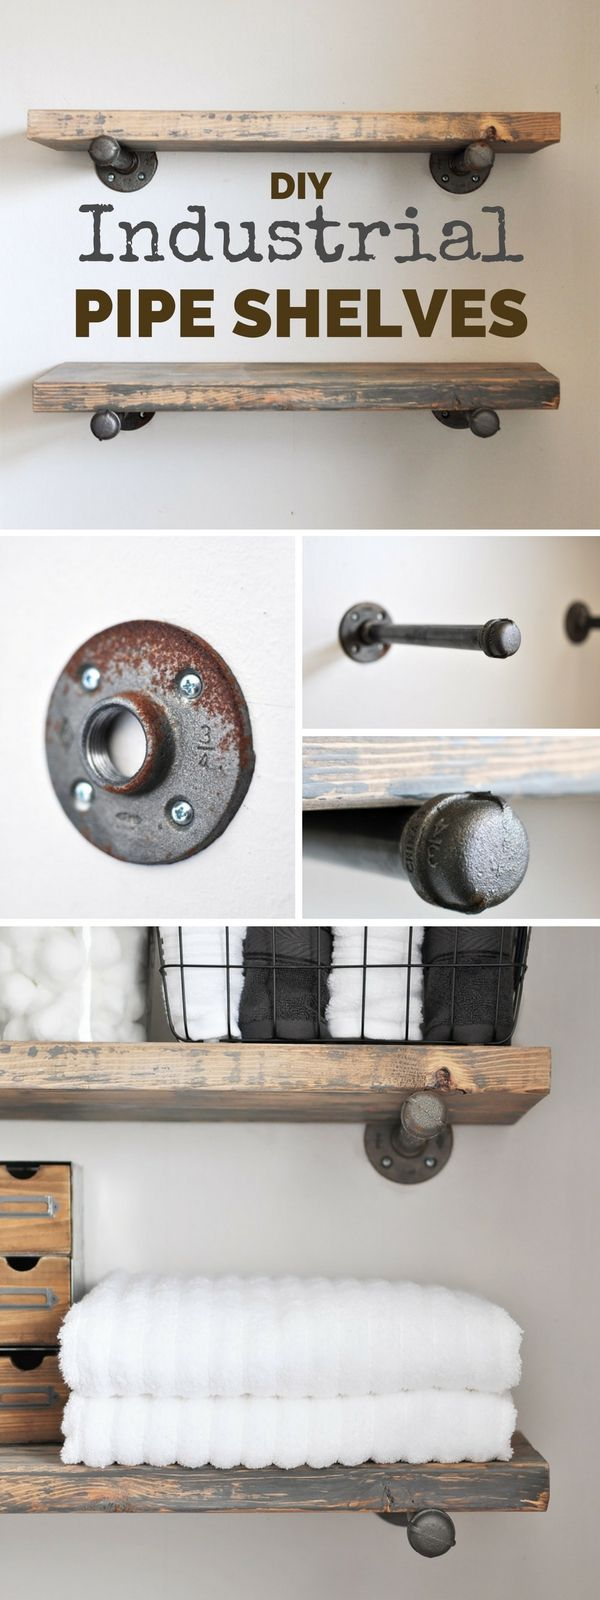 Check out the tutorial DIY Industrial Pipe